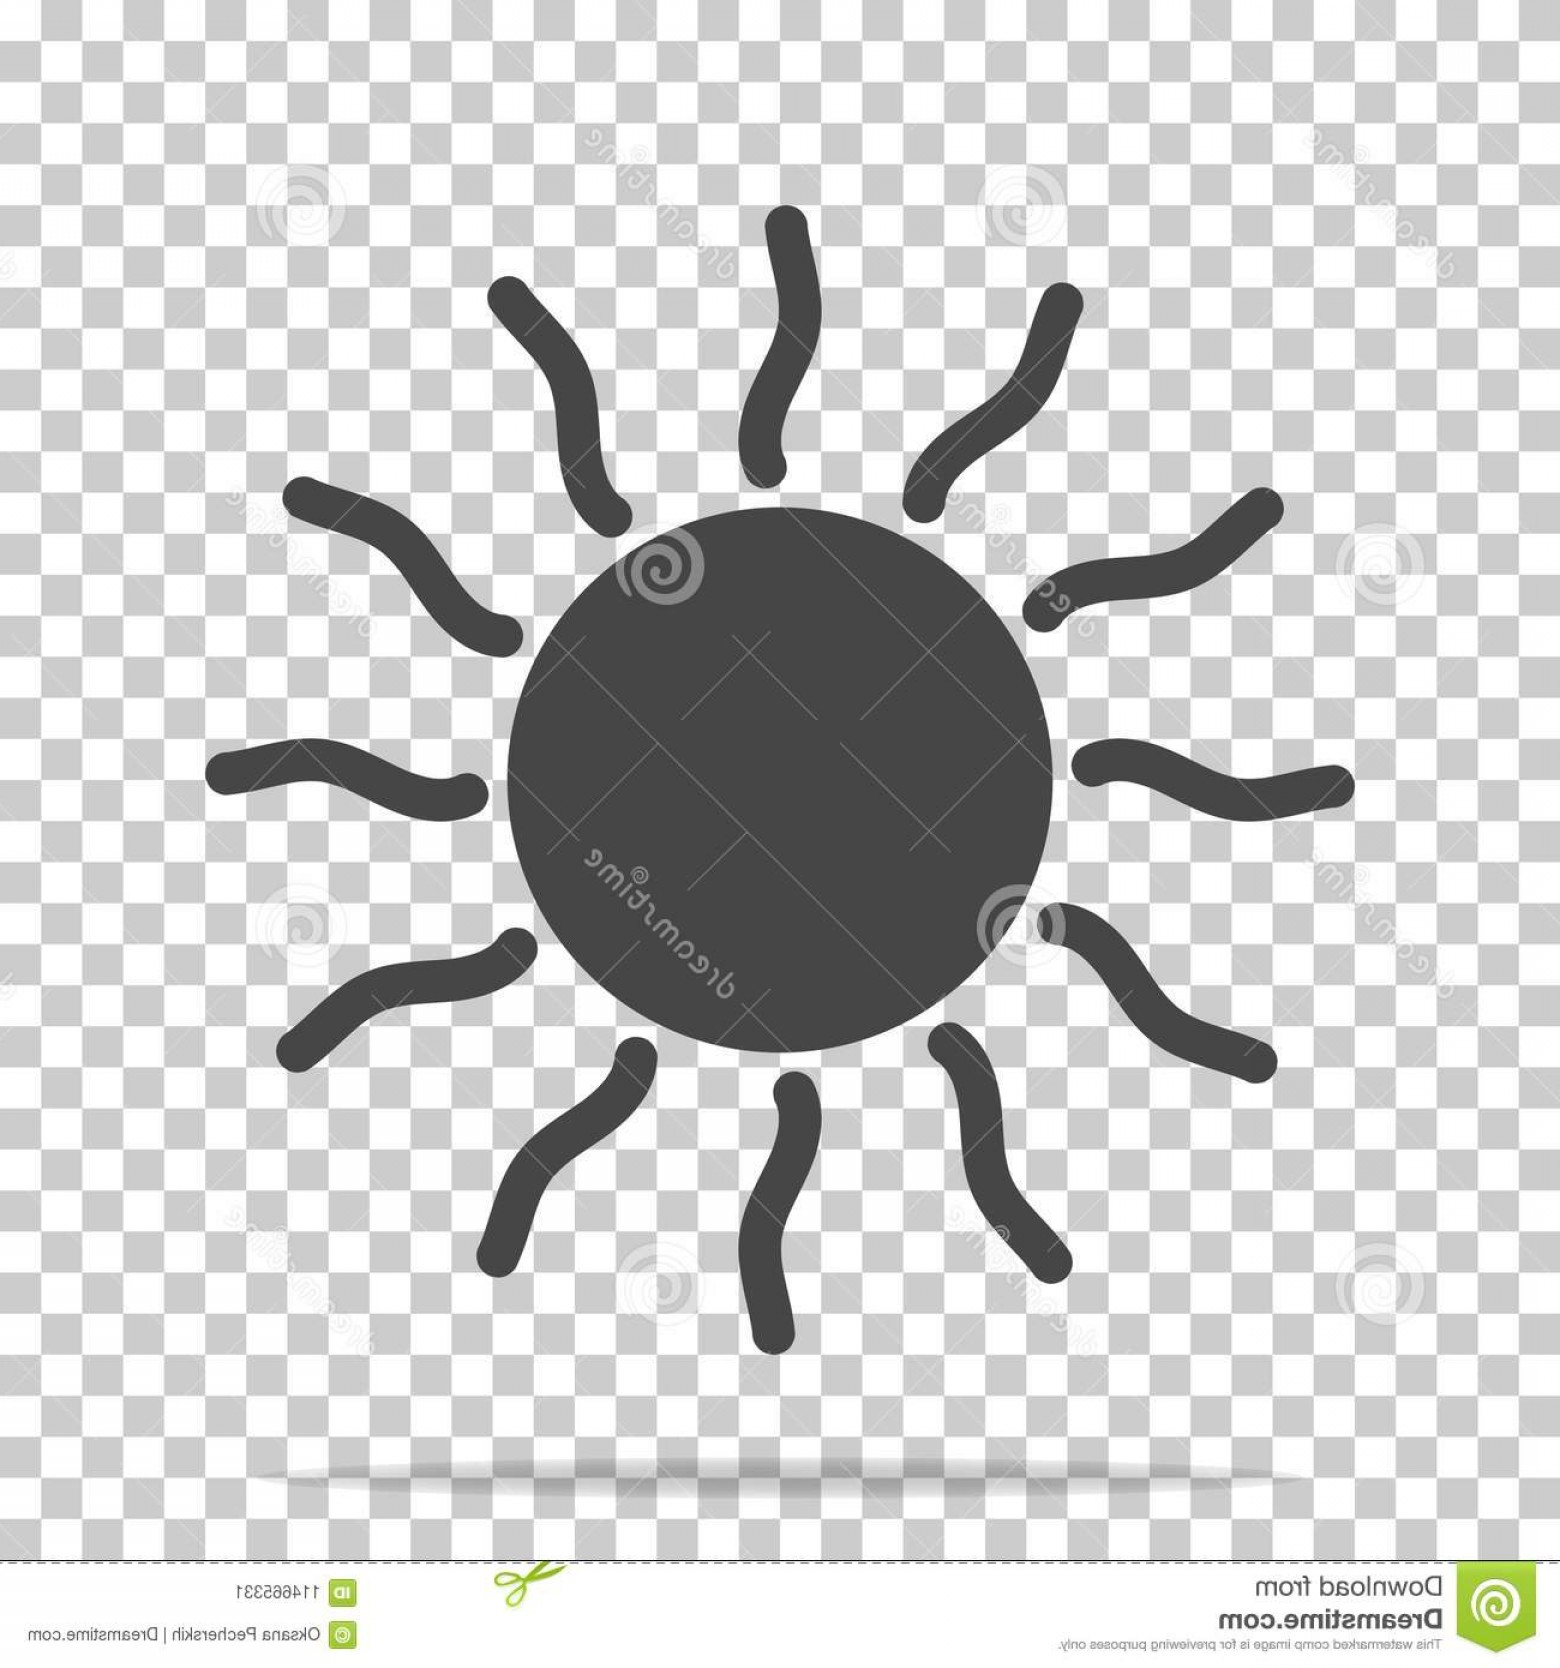 Easy Spider Vector Illustration: Vector Icon Sun Transparent Background Layers Grouped Easy Editing Illustration Your Design Image